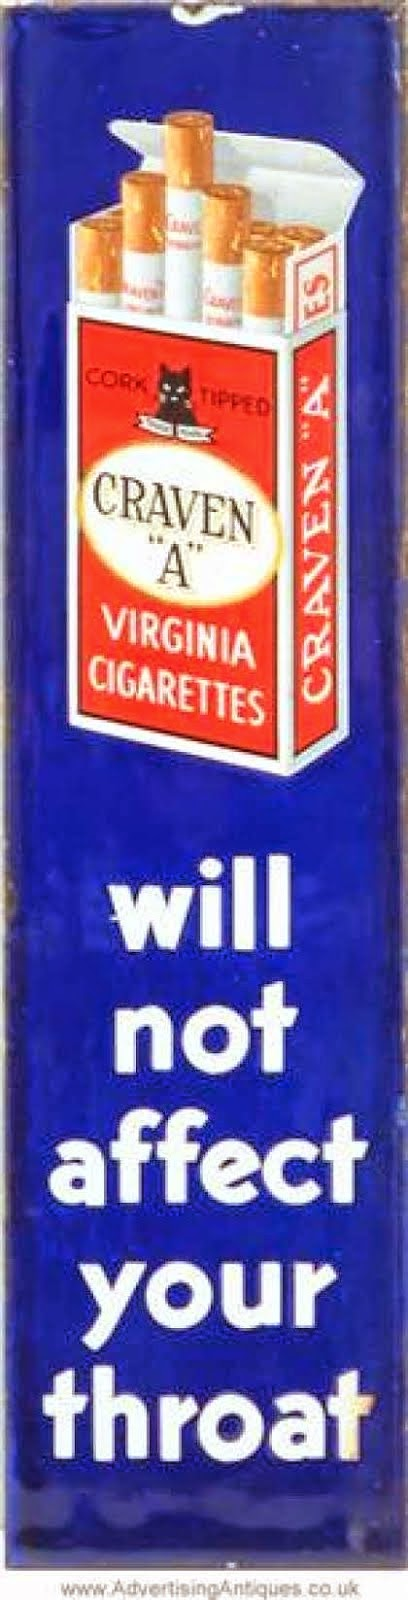 Native cigarettes in Missouri